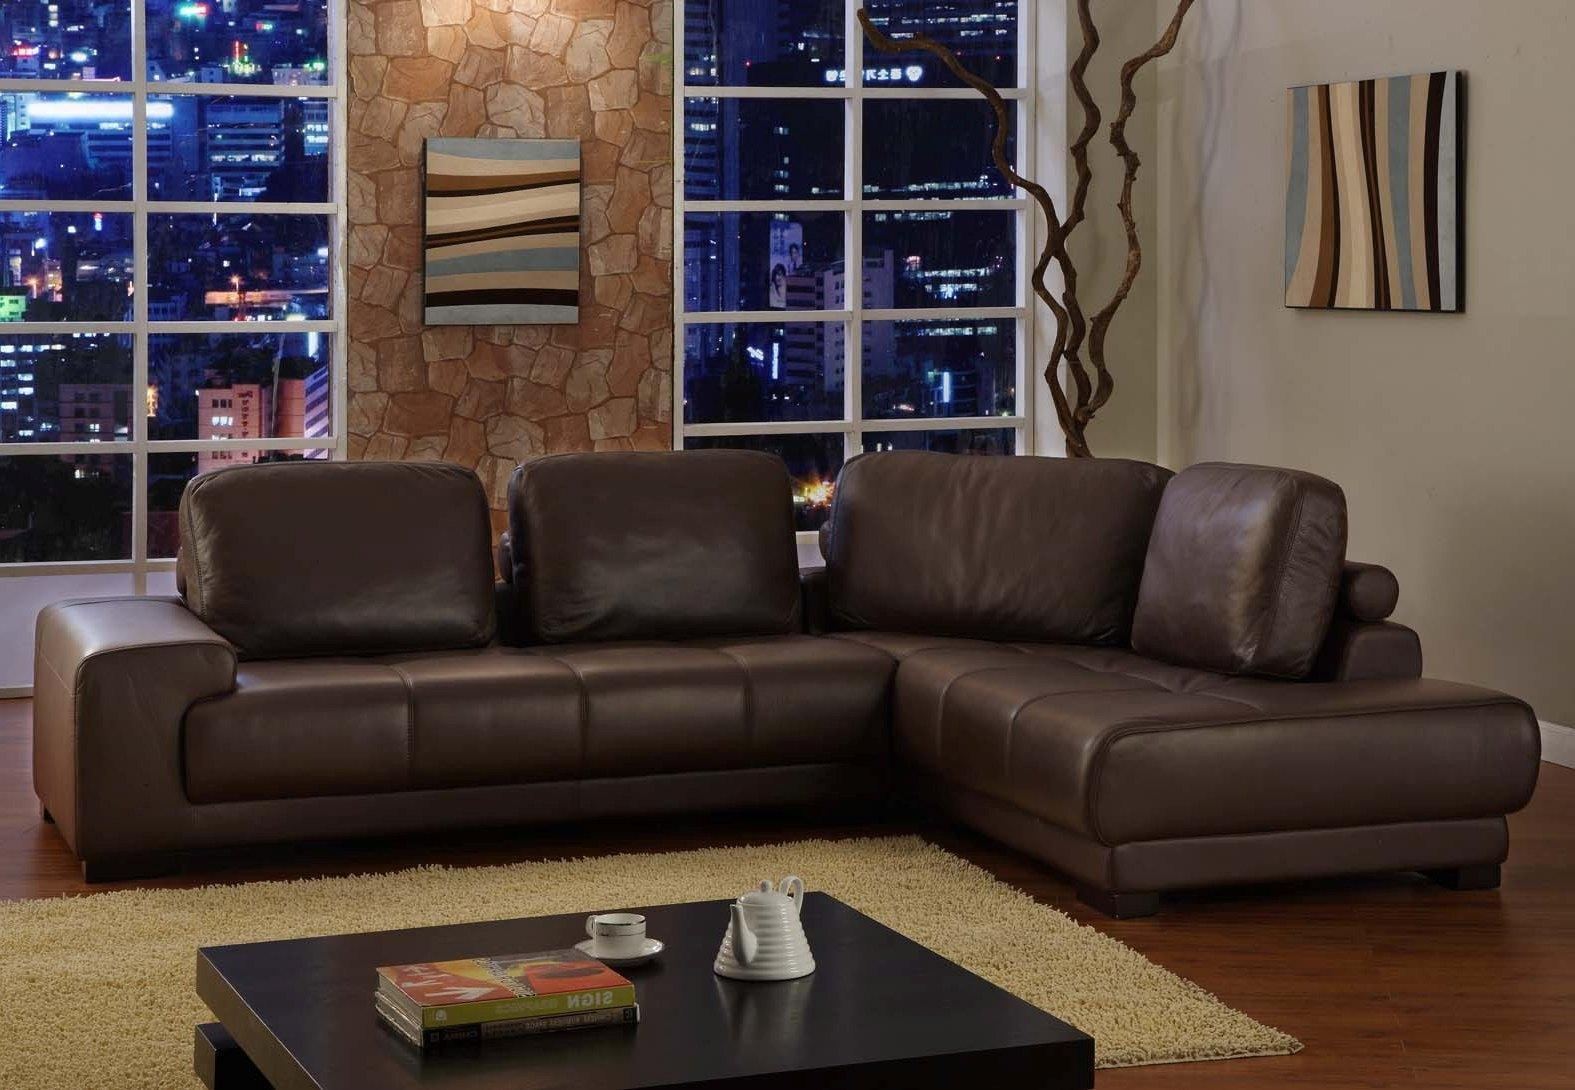 Sofas Center : Contemporary Sectional Sofas On Clearance With Regard To Contemporary Brown Leather Sofas (View 8 of 20)